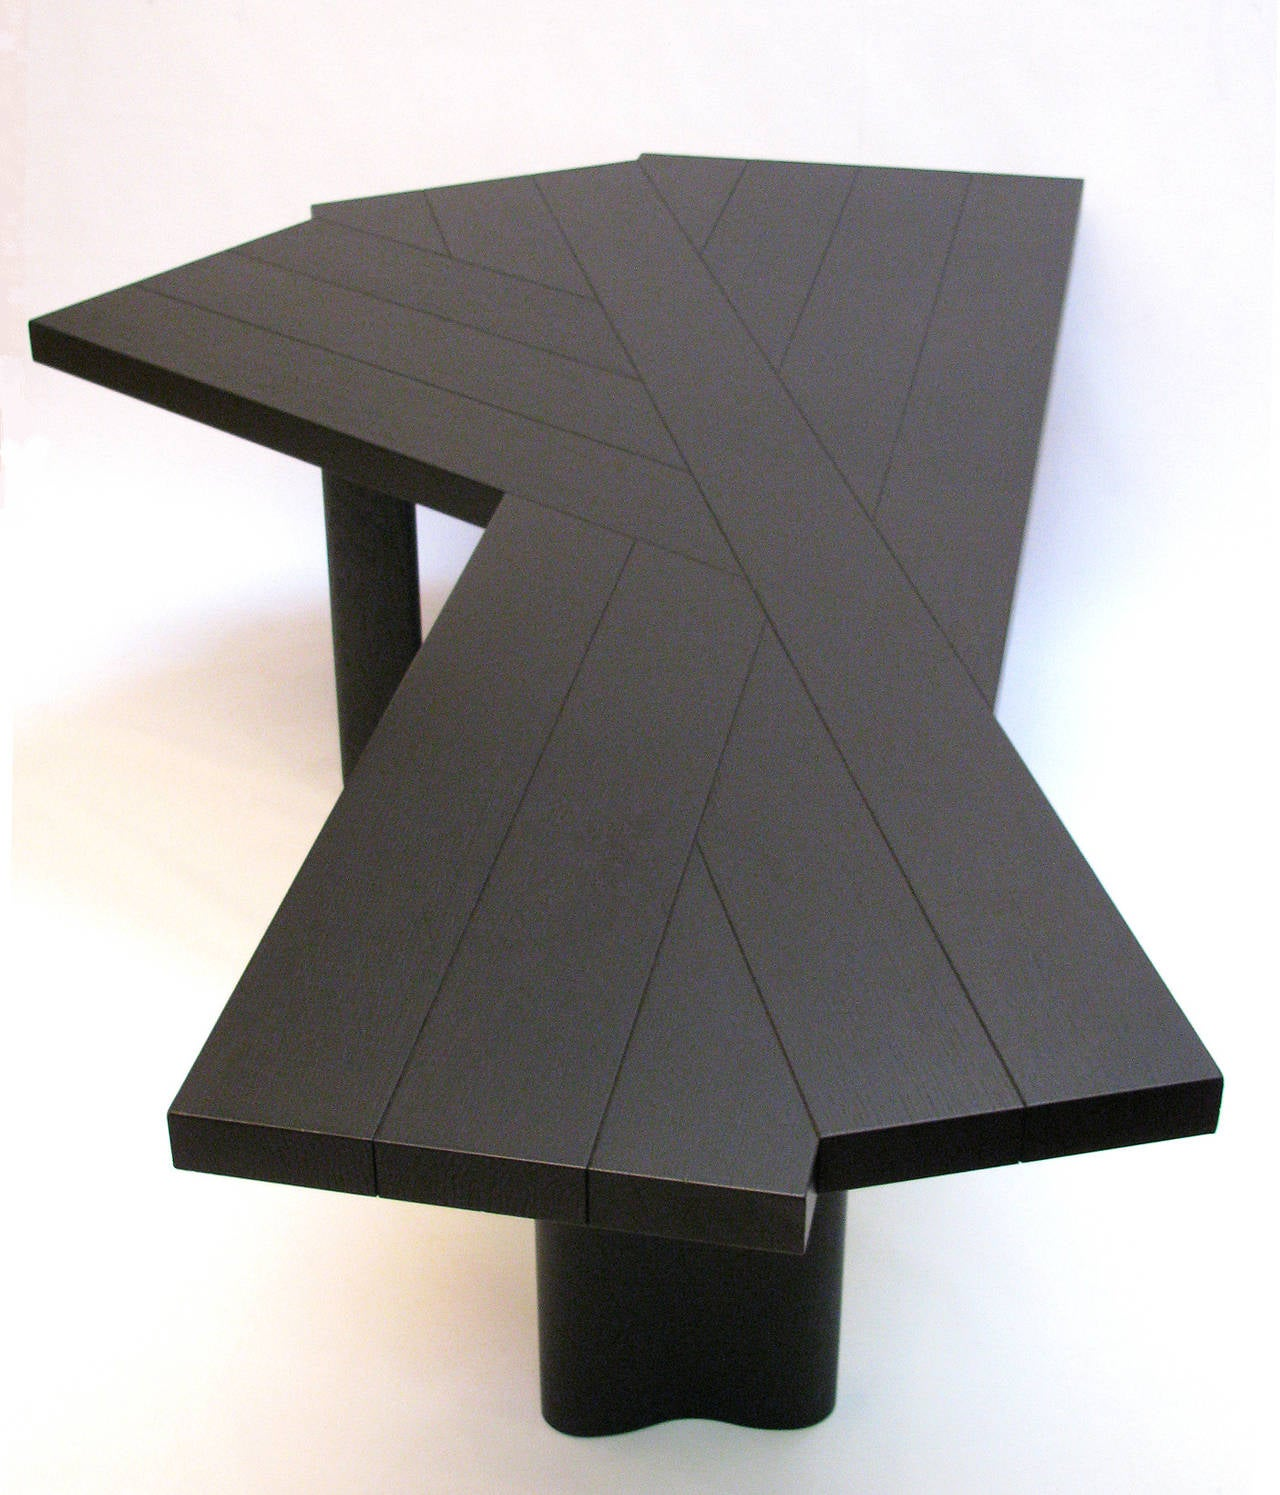 charlotte perriand stained oak table at 1stdibs. Black Bedroom Furniture Sets. Home Design Ideas